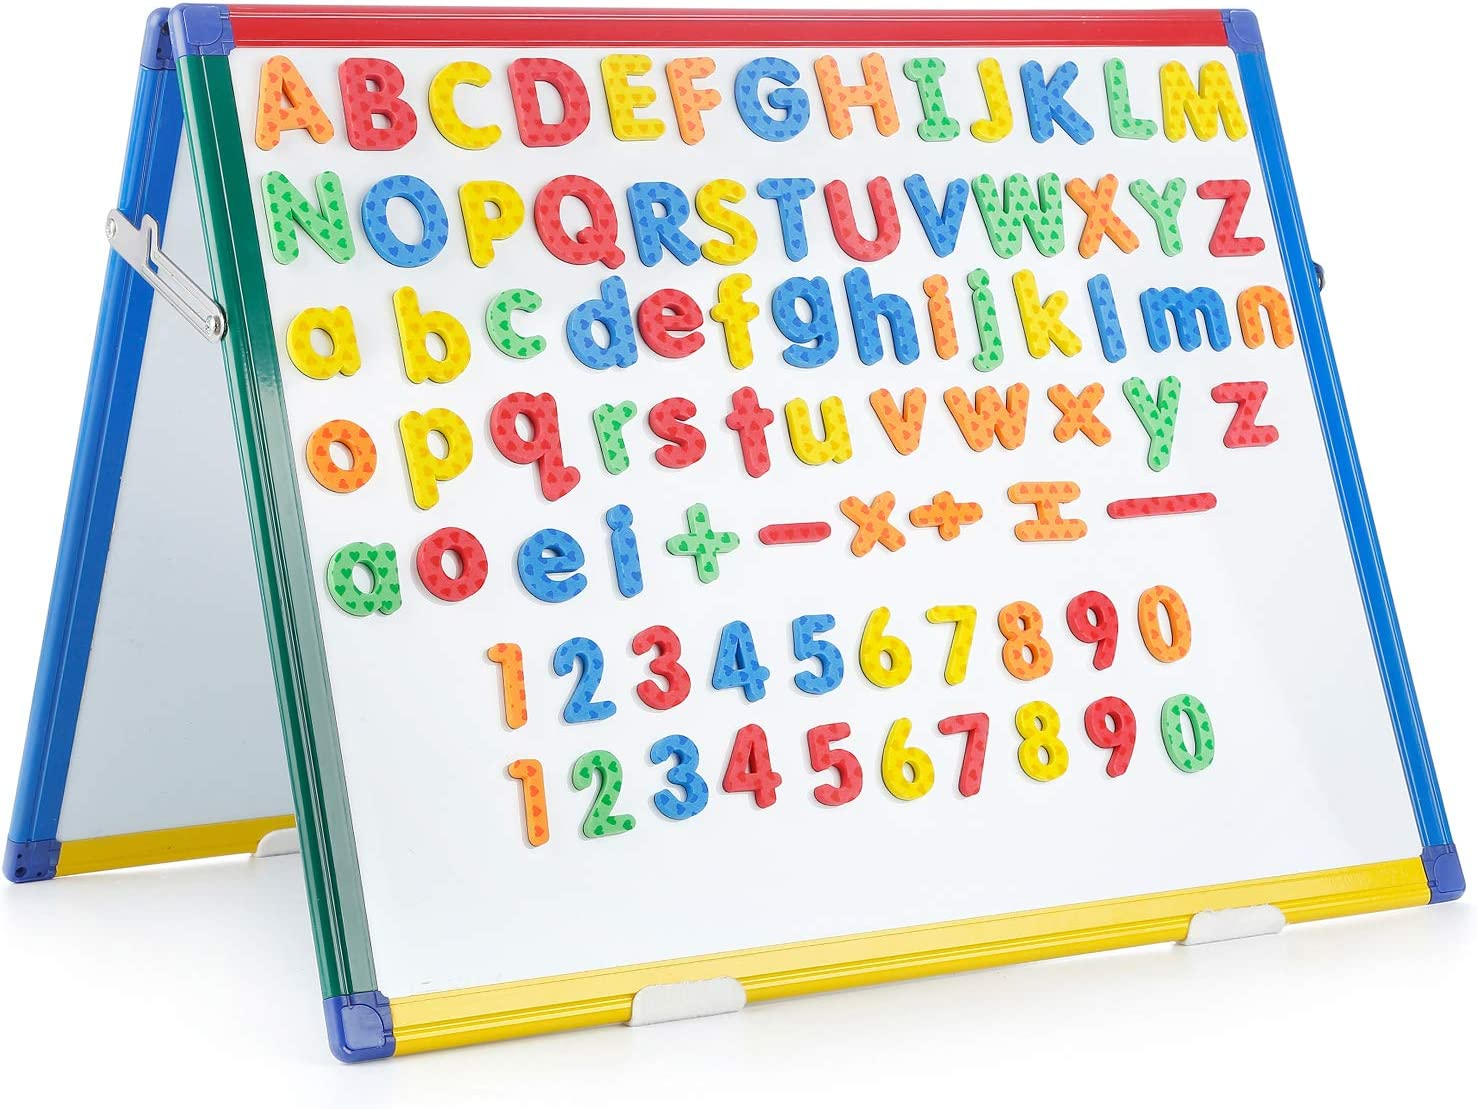 Swansea Tabletop Whiteboard Magnetic Dry Erase Wipe Planning Board with 82Pcs Foam Magnets,24x18inch